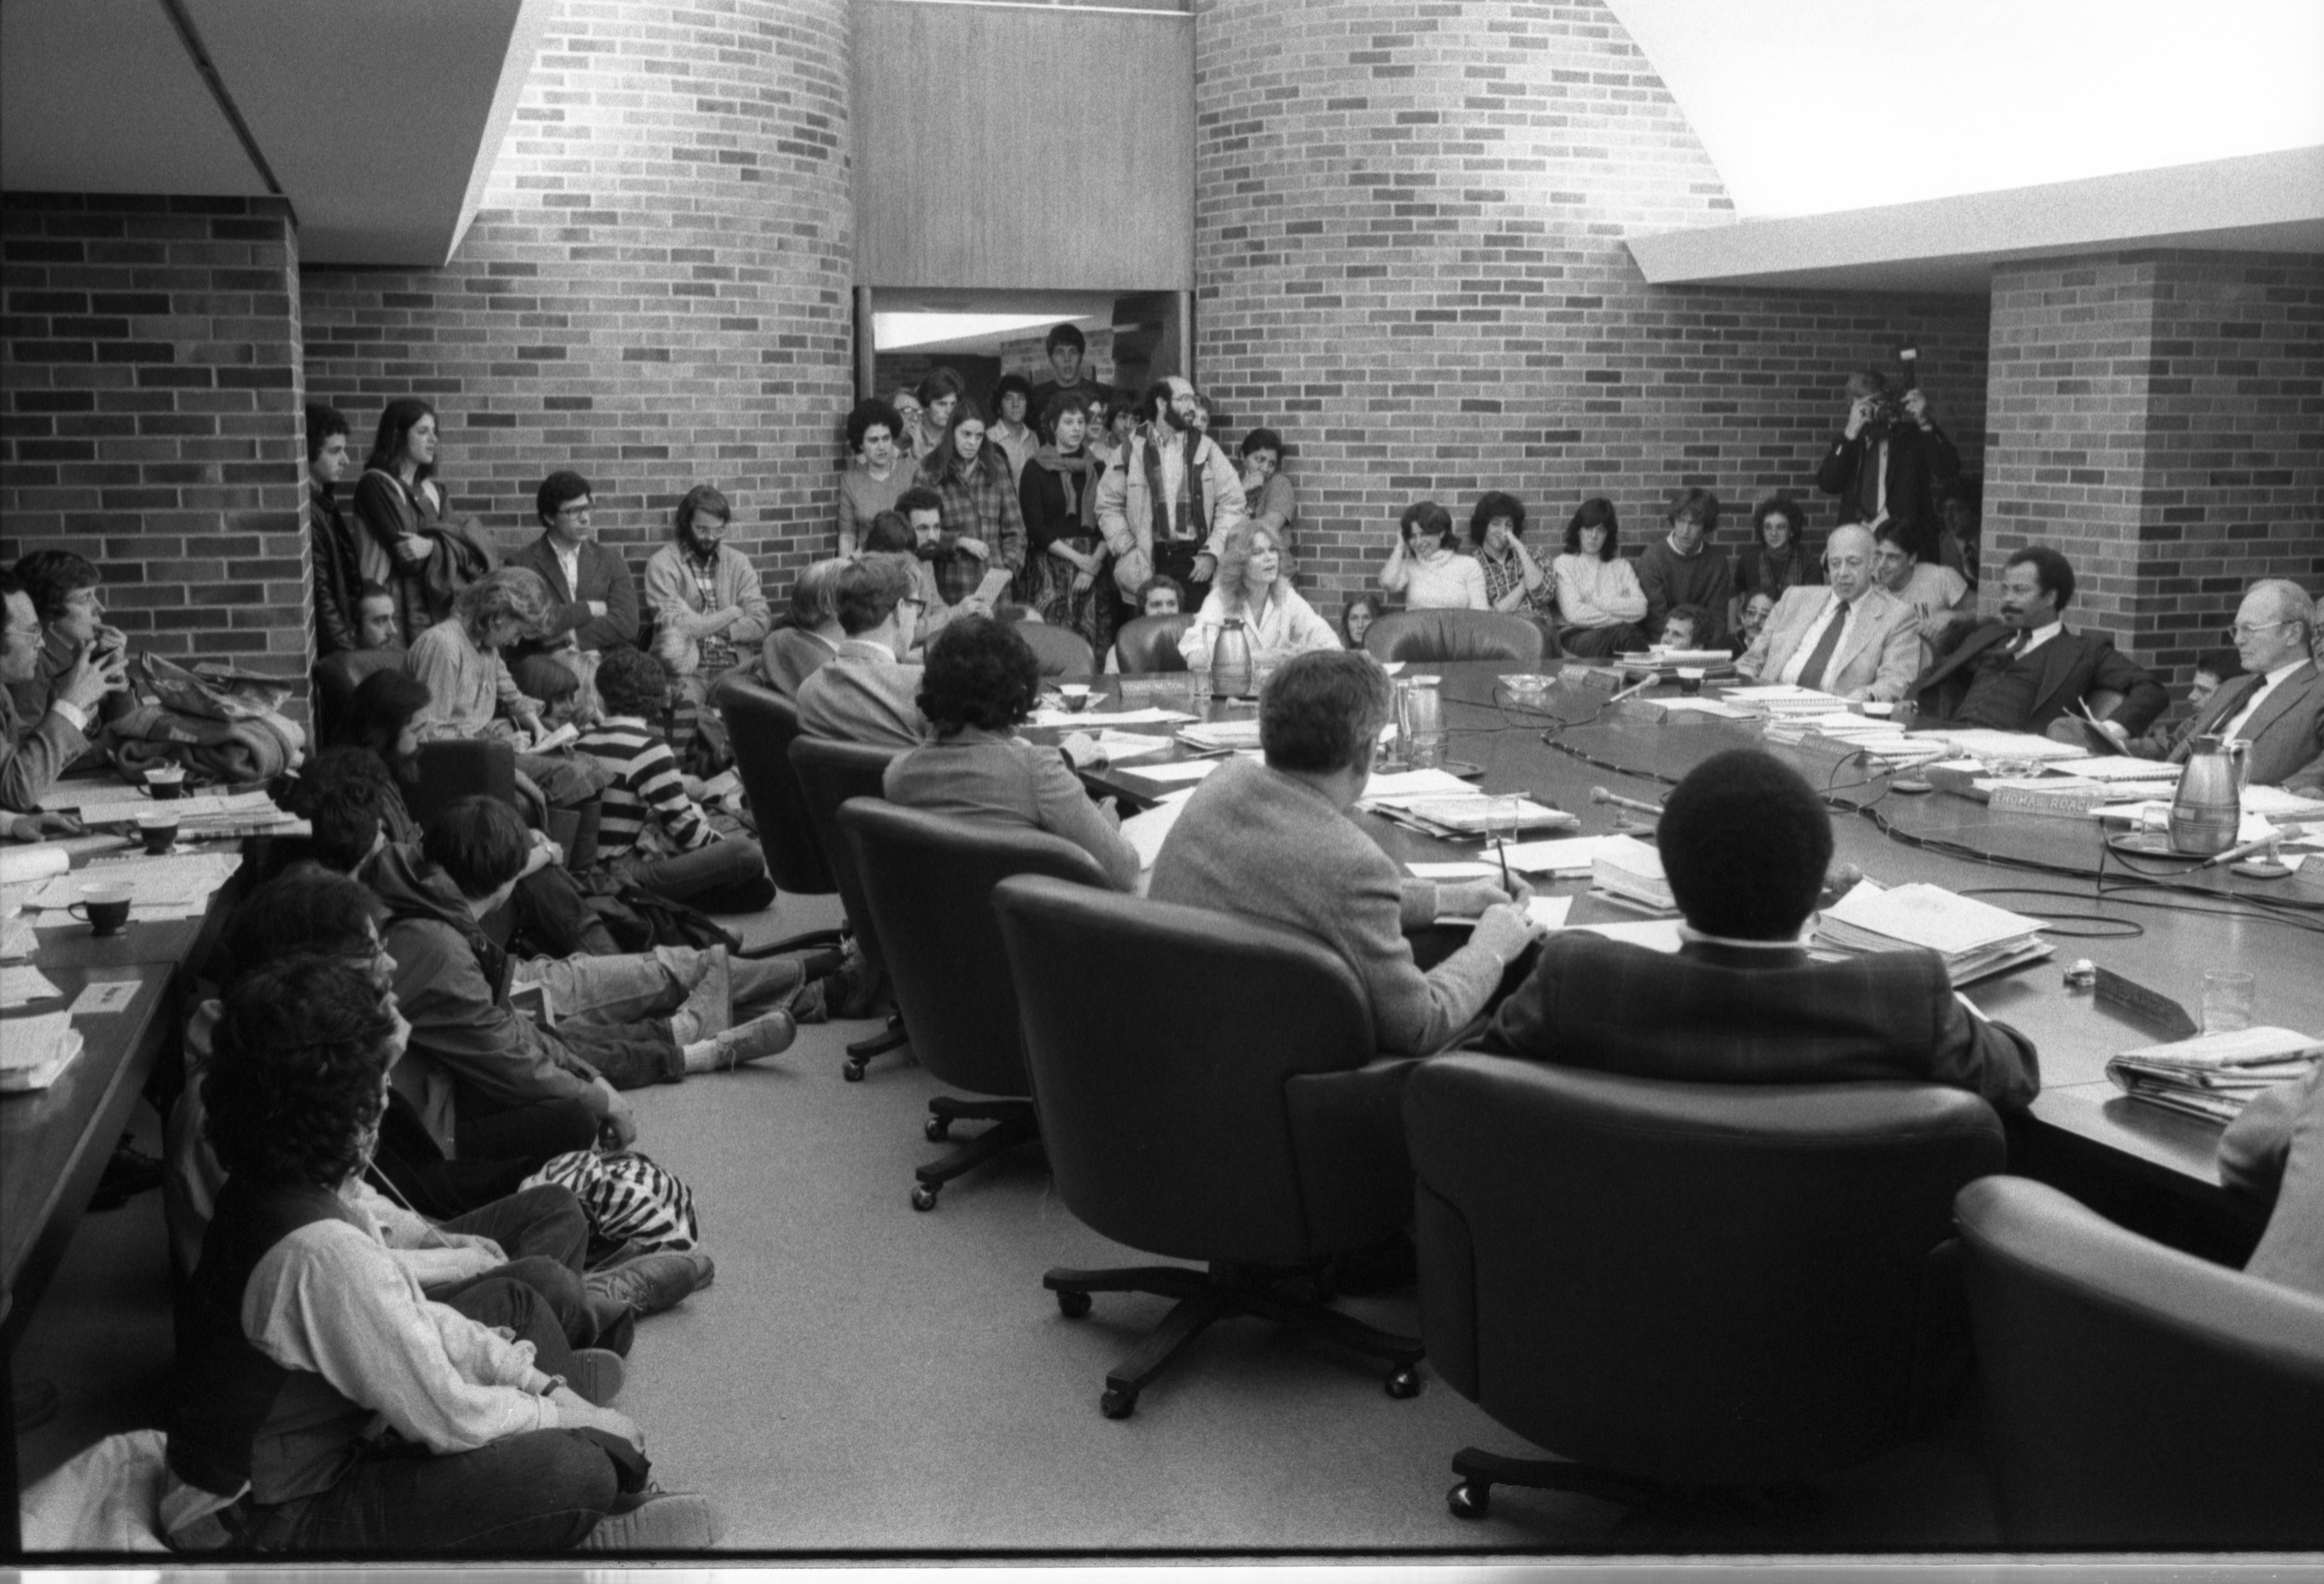 UM Student, Lisa Drouilard, Addresses Board Of Regents, February 20, 1981 image